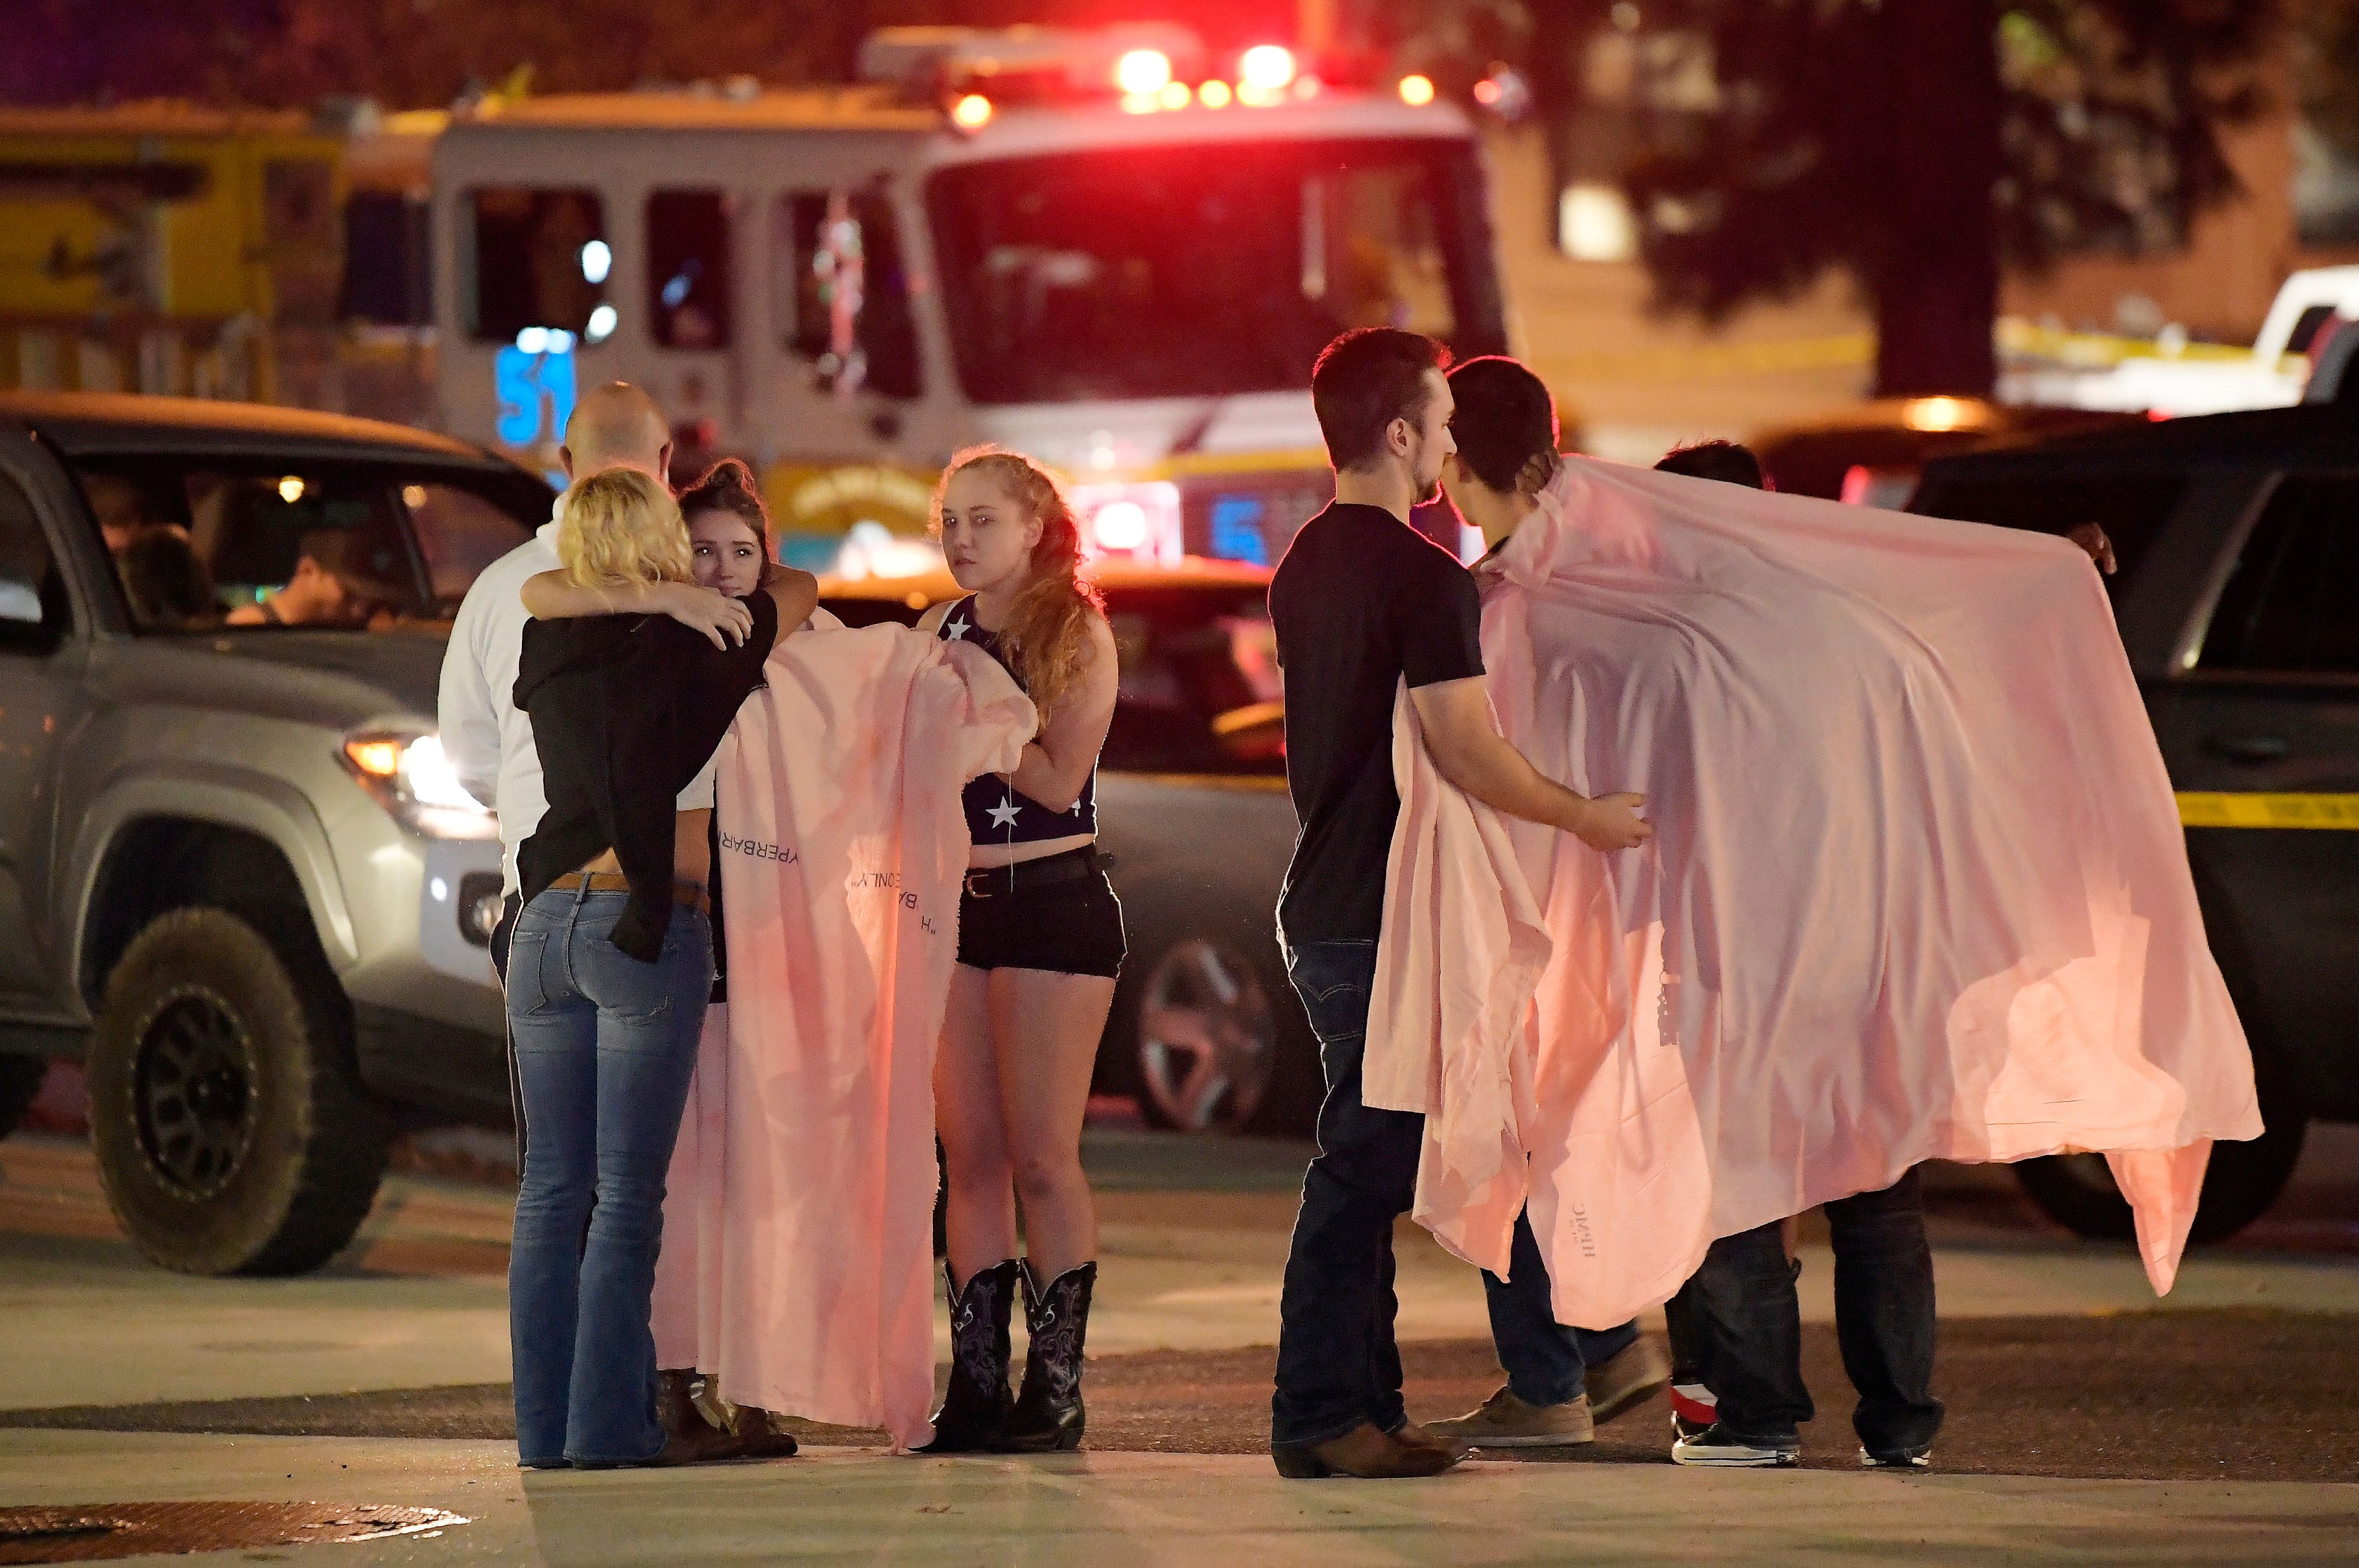 People comfort each other as they stand near the Borderline Bar & Grill in Thousand Oaks, Calif., in the early hours of T